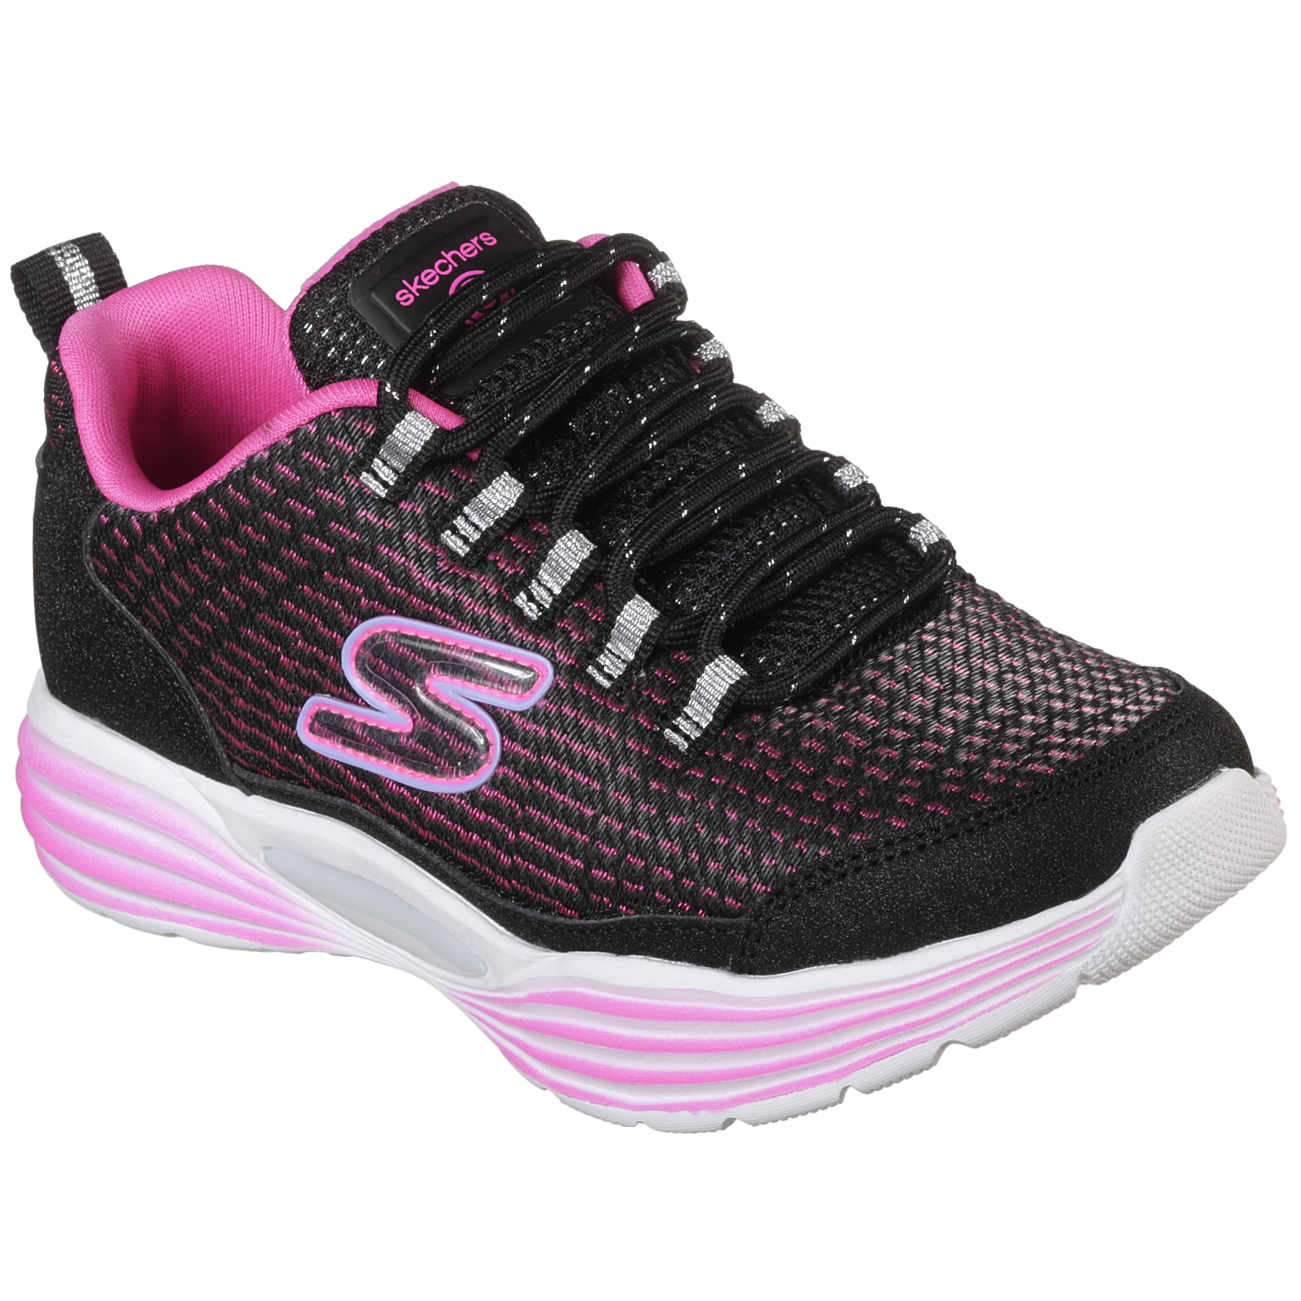 Unisex Kids Skechers S Lights Lumintors Luxe